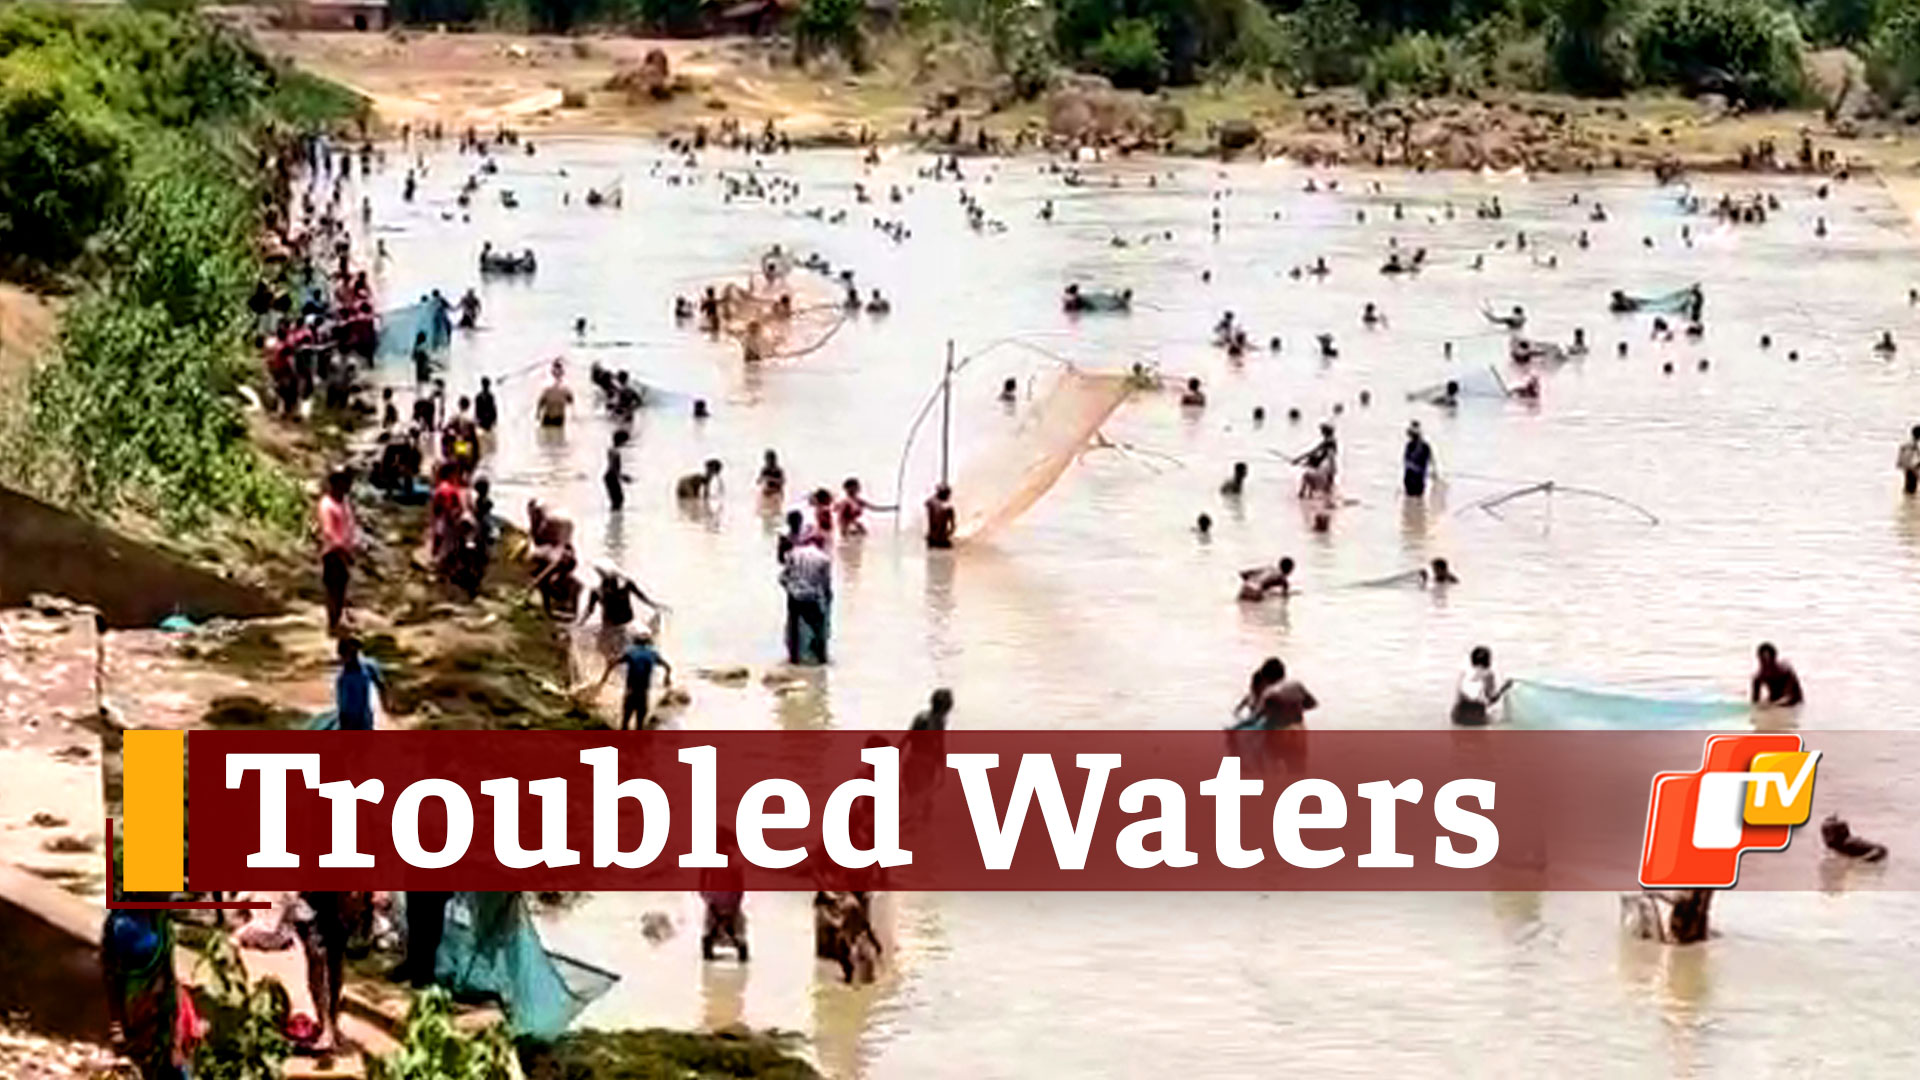 Hundreds In Odisha Gather For Fishing In Village Pond During #COVID19 Lockdown